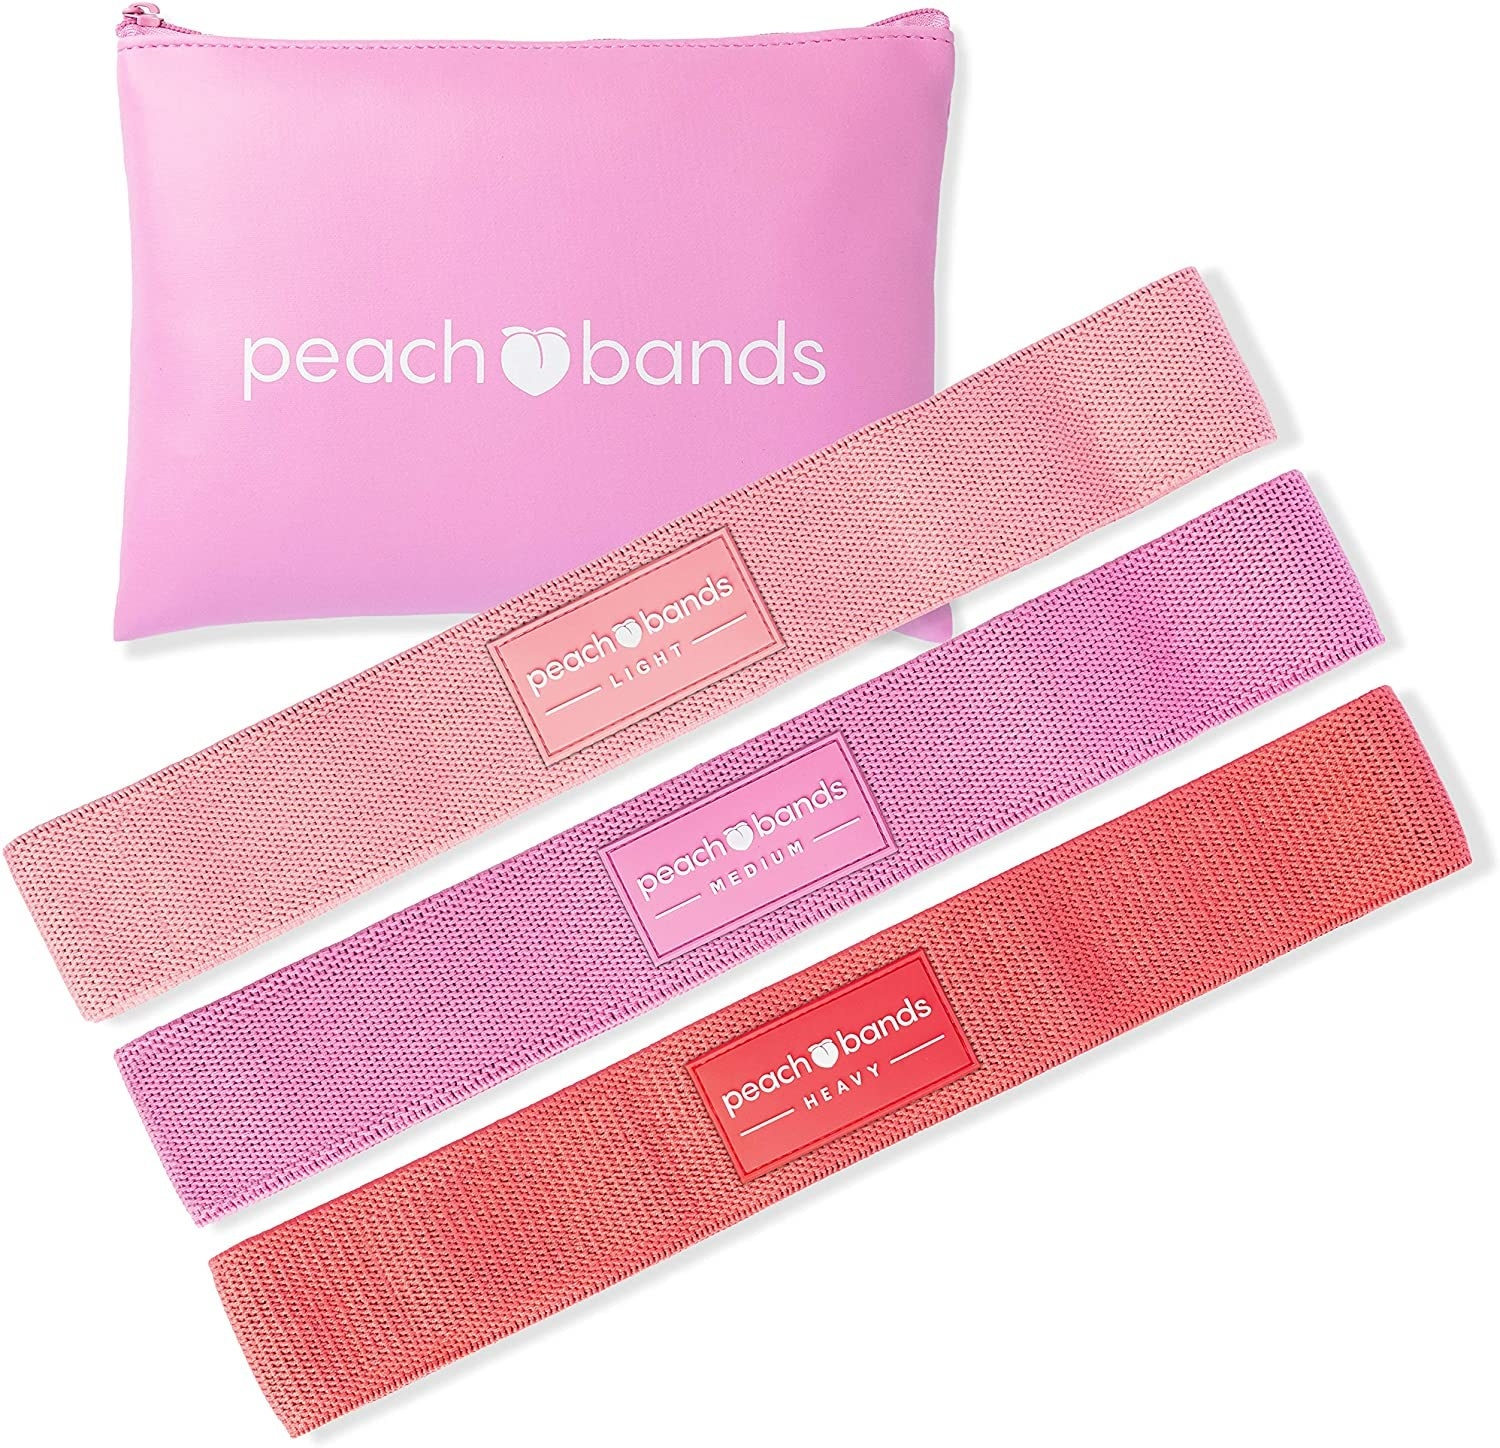 Three workout bands and a pouch